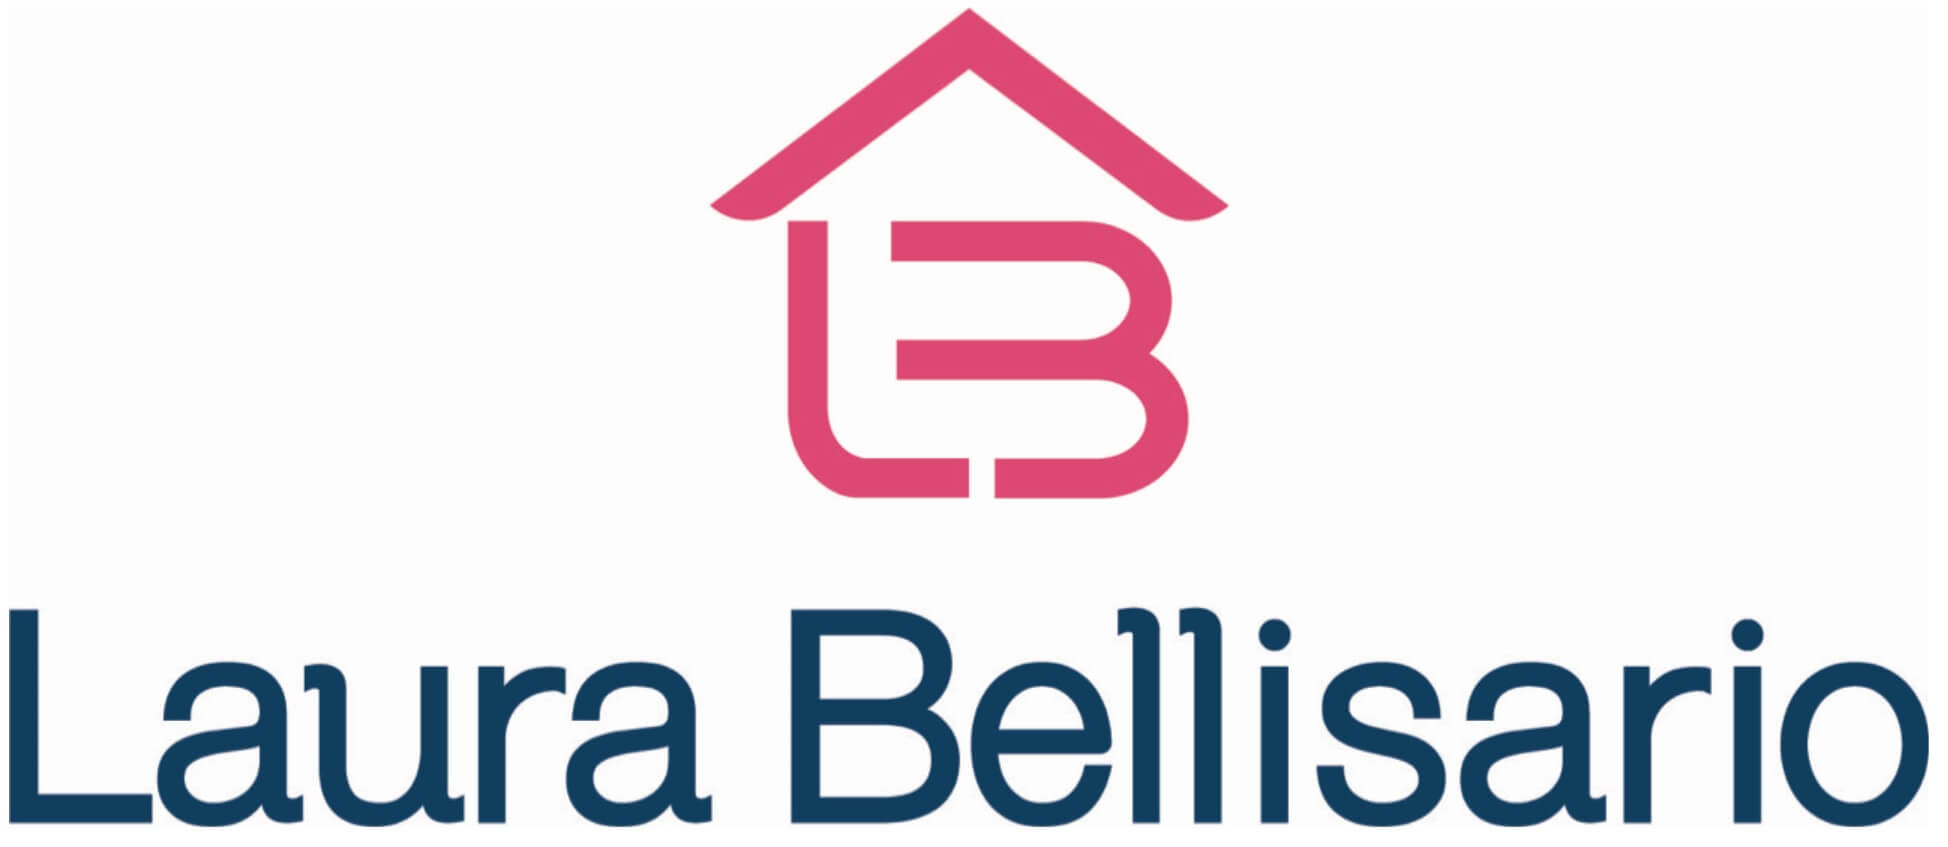 Laura-Bellisario-Logo-Realtor-Cutting-Board-Program